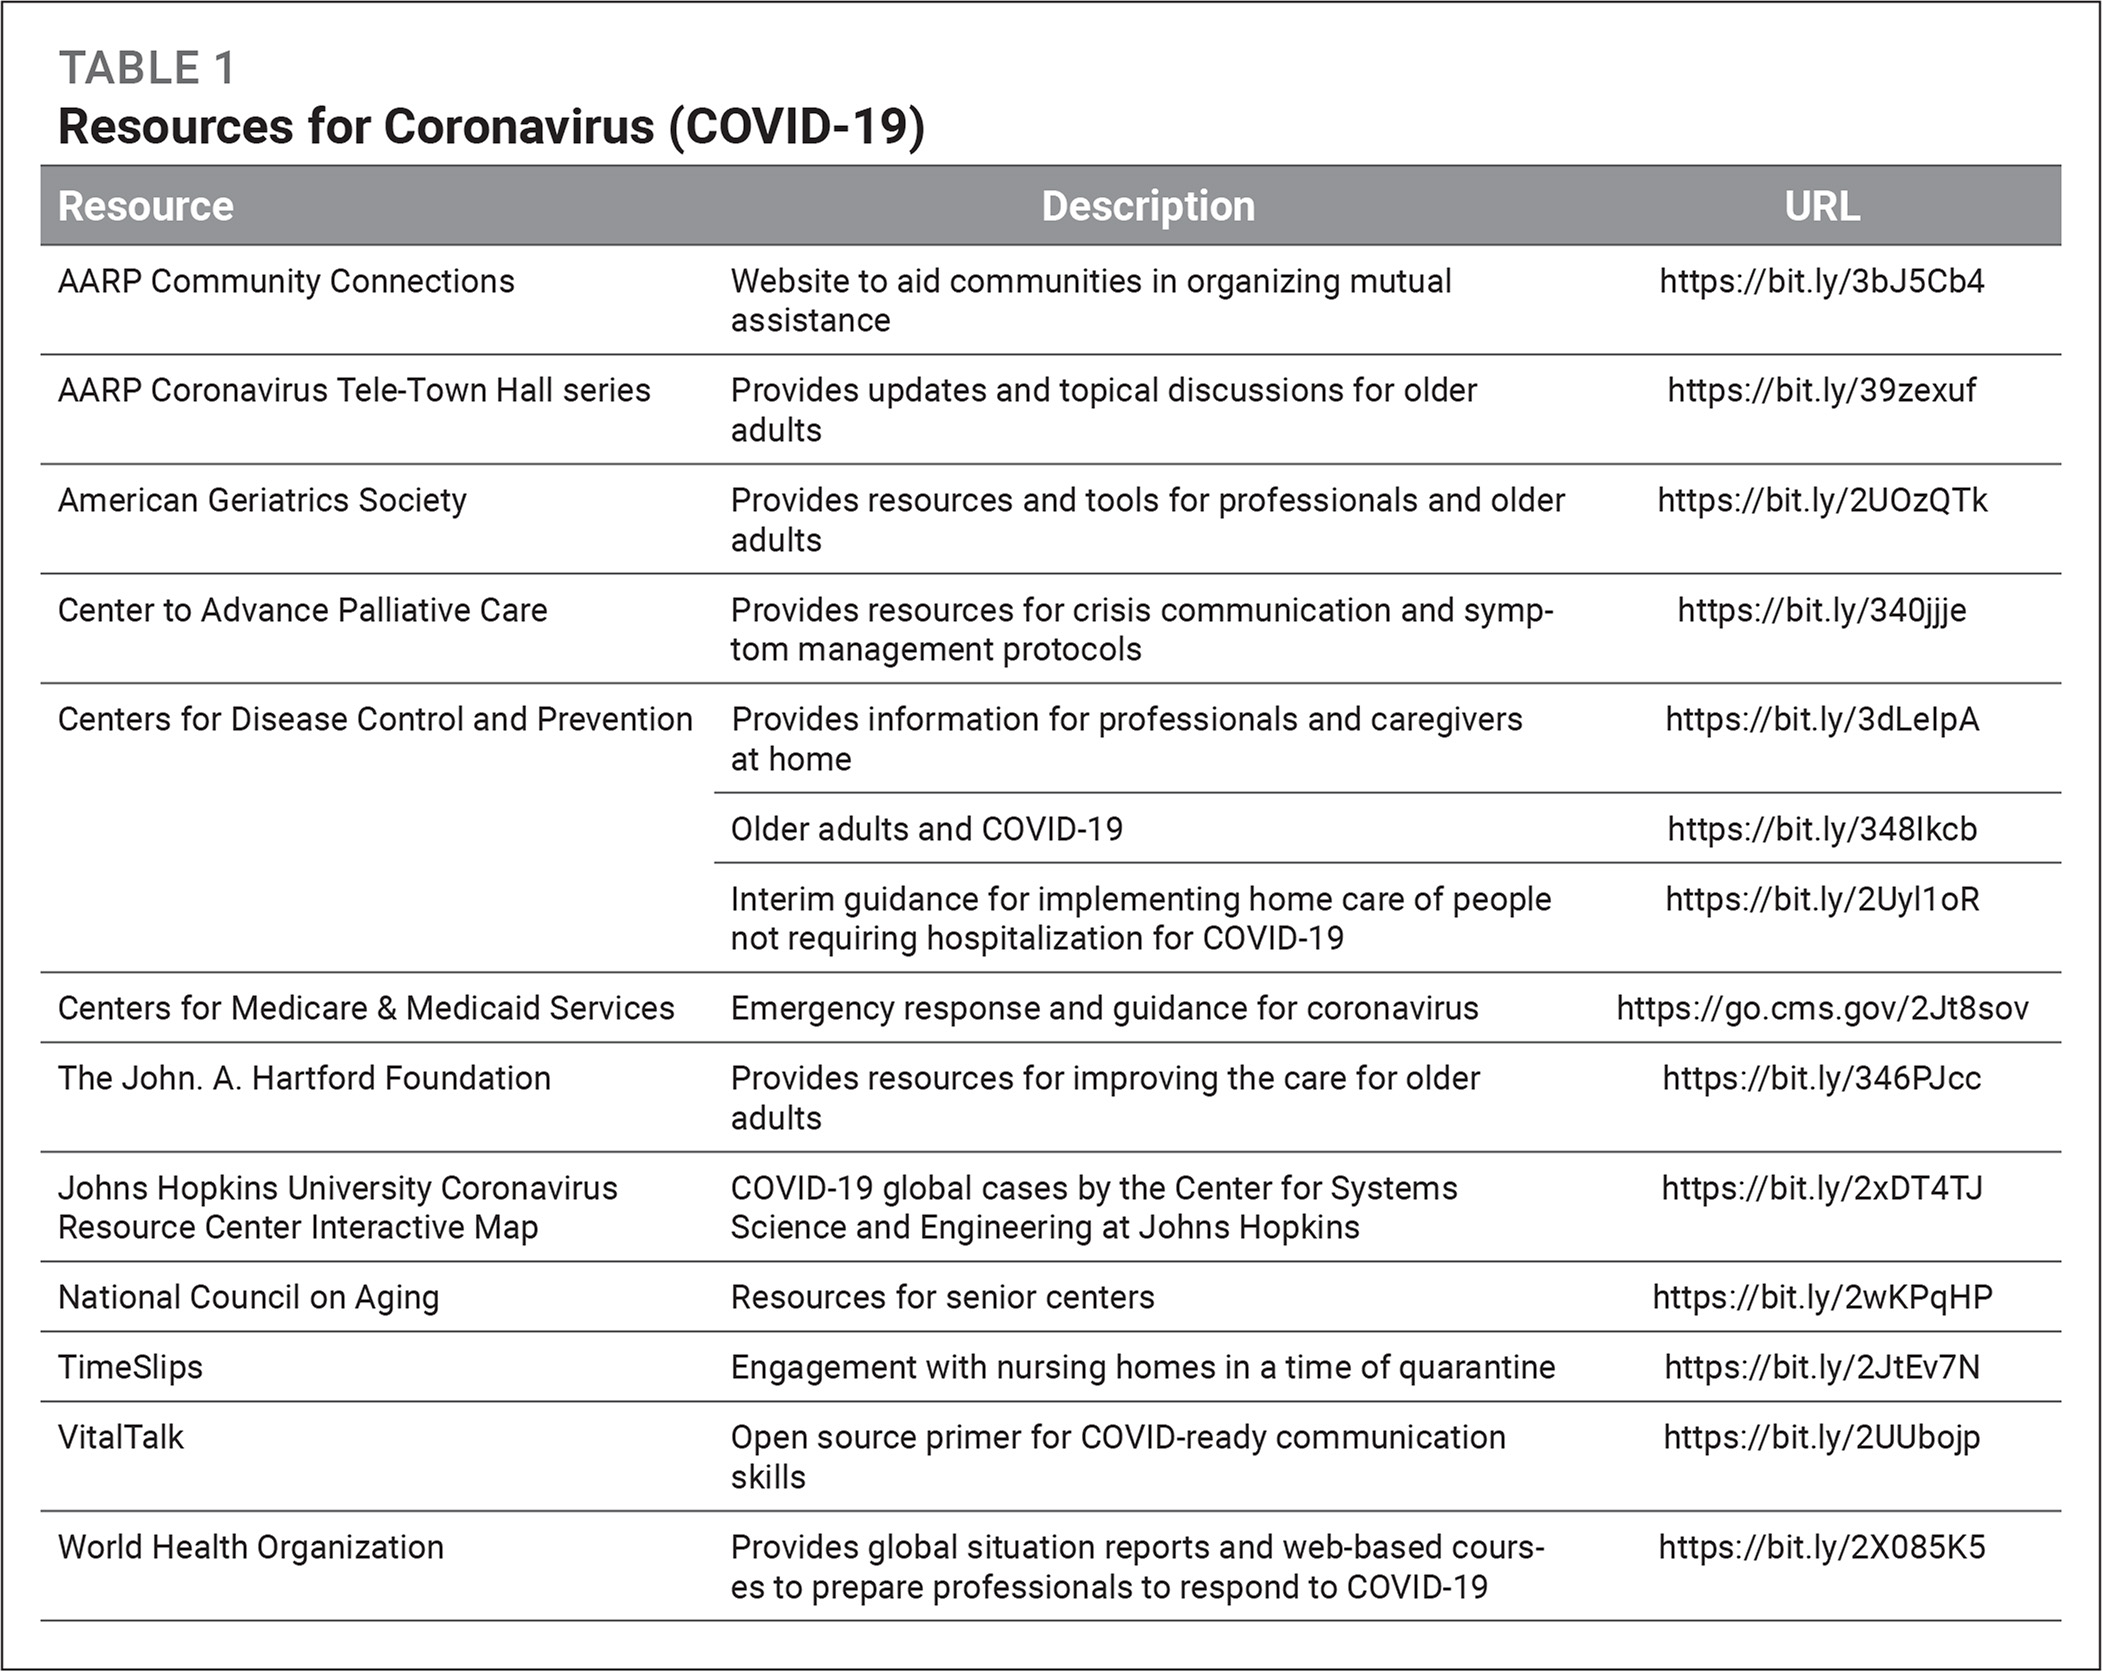 Resources for Coronavirus (COVID-19)